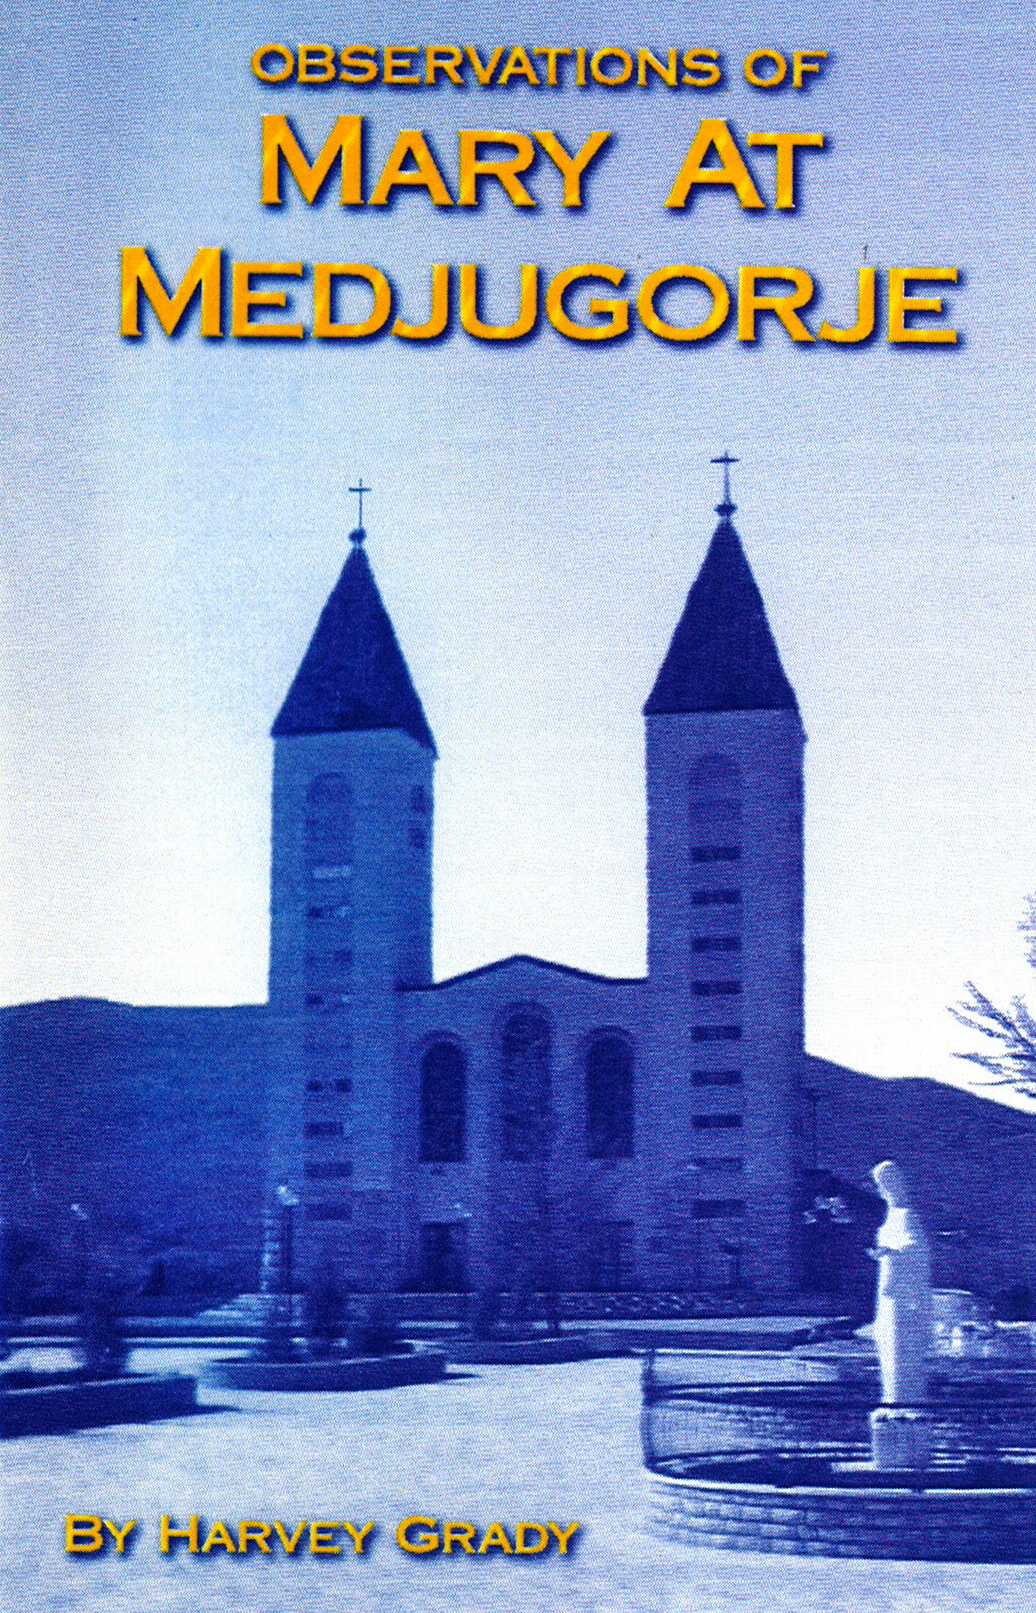 Observations of Mary at Medjugorje